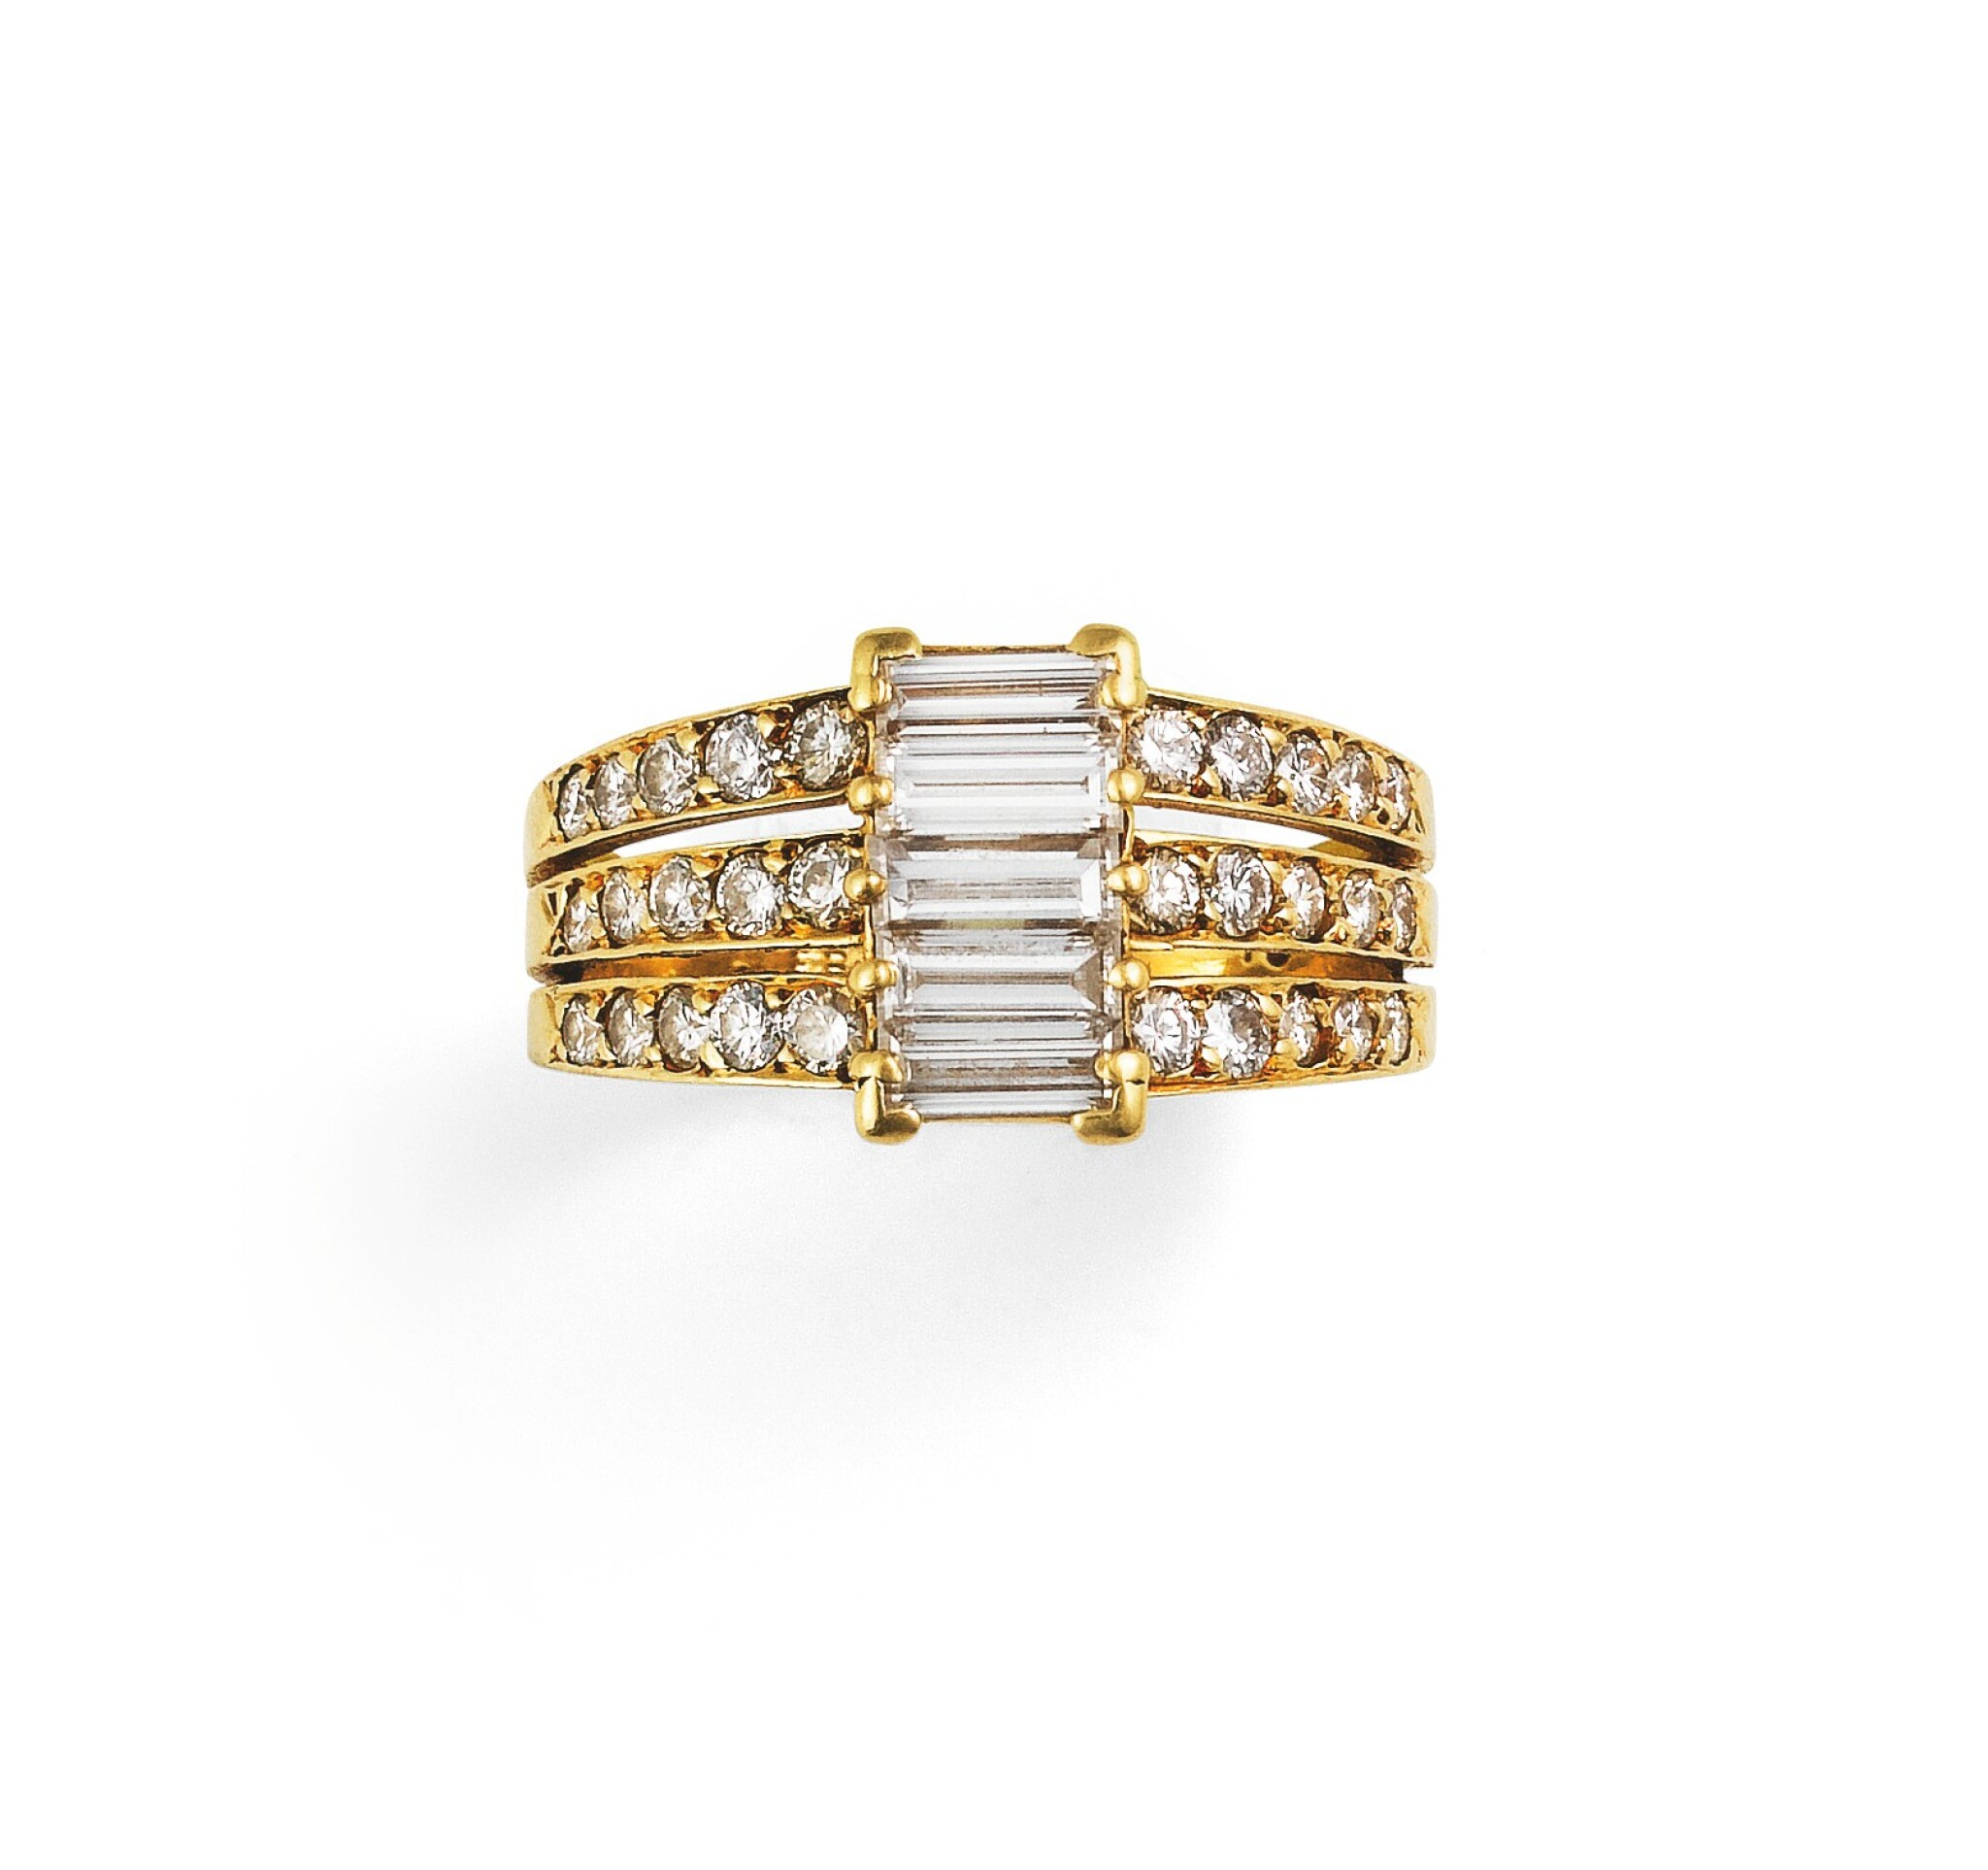 View full screen - View 1 of Lot 80. Van Cleef & Arpels, Diamond ring [Bague diamants].